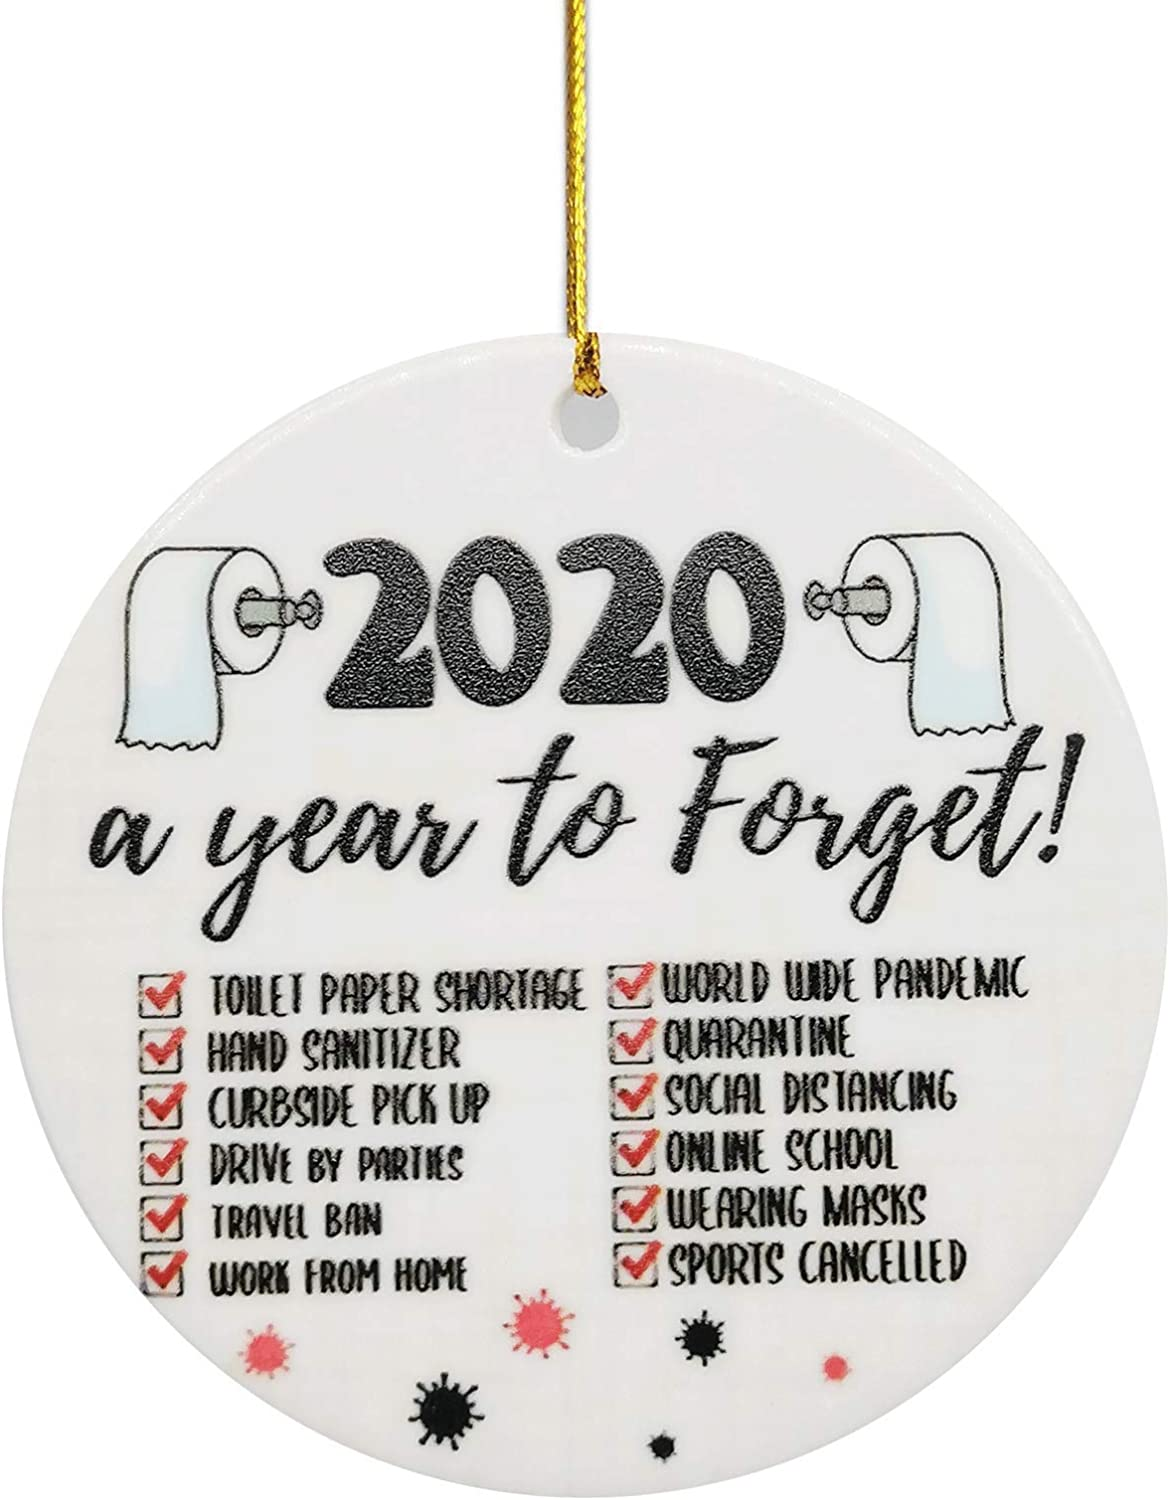 BCARICH 2020 Christmas Ornament Quarantine, Cute Hanging Ornament, 2020 Commemorative Funny Ornament, 2020 Events - A Year to Forget, Both Side Printed Printed Circle Ceramic Ornament, 1 pcs